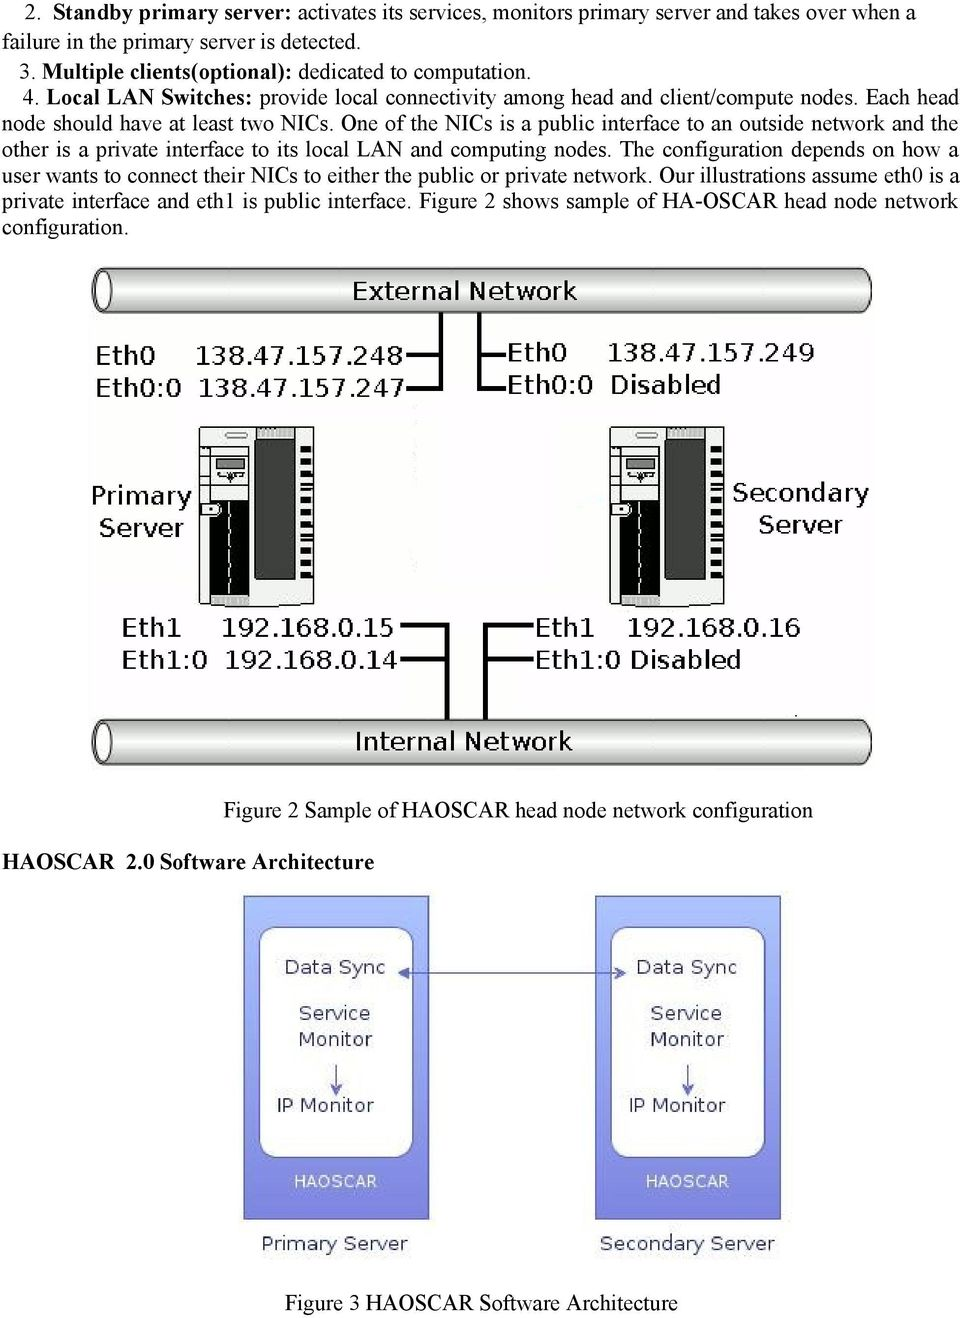 One of the NICs is a public interface to an outside network and the other is a private interface to its local LAN and computing nodes.